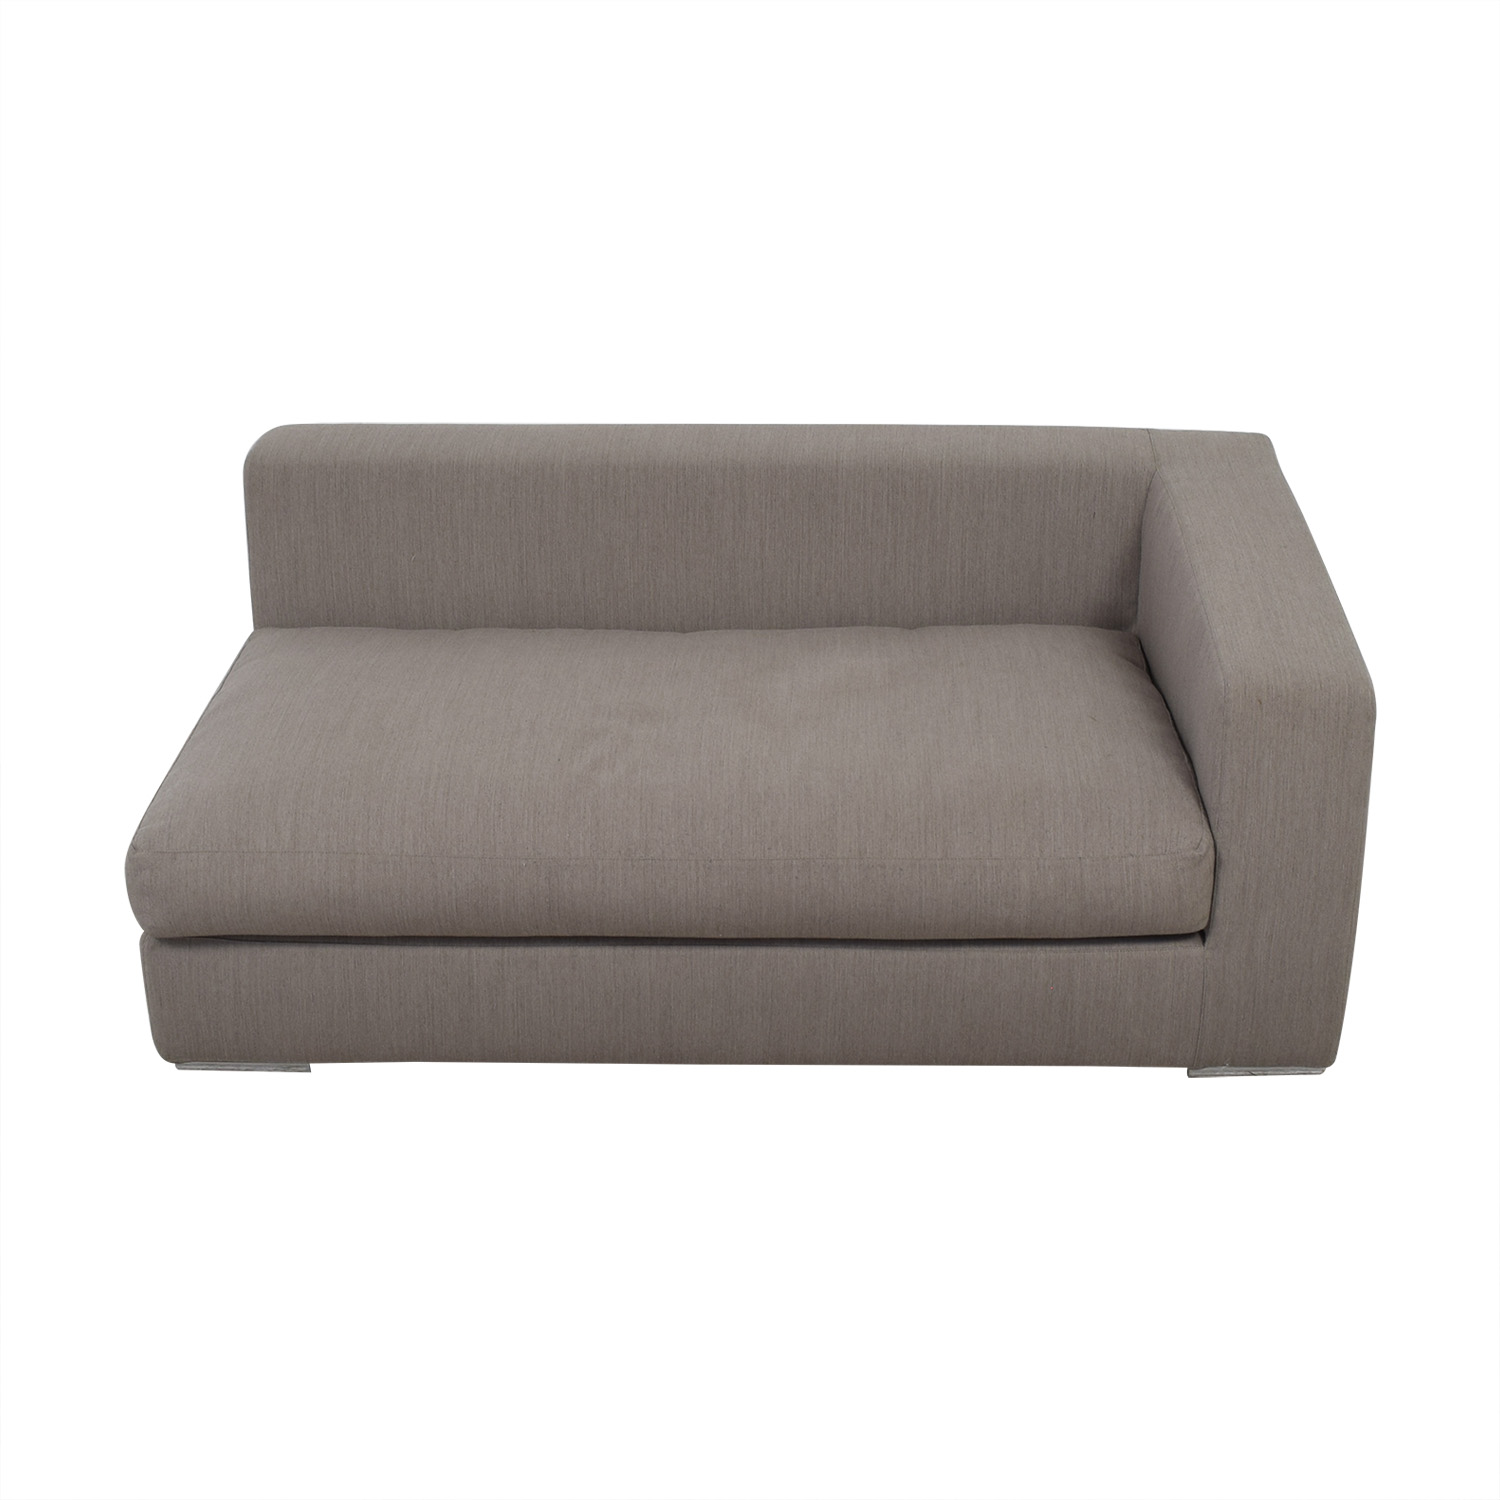 buy Toscanova Toscanova Custom Mood Grey Sofa Section online